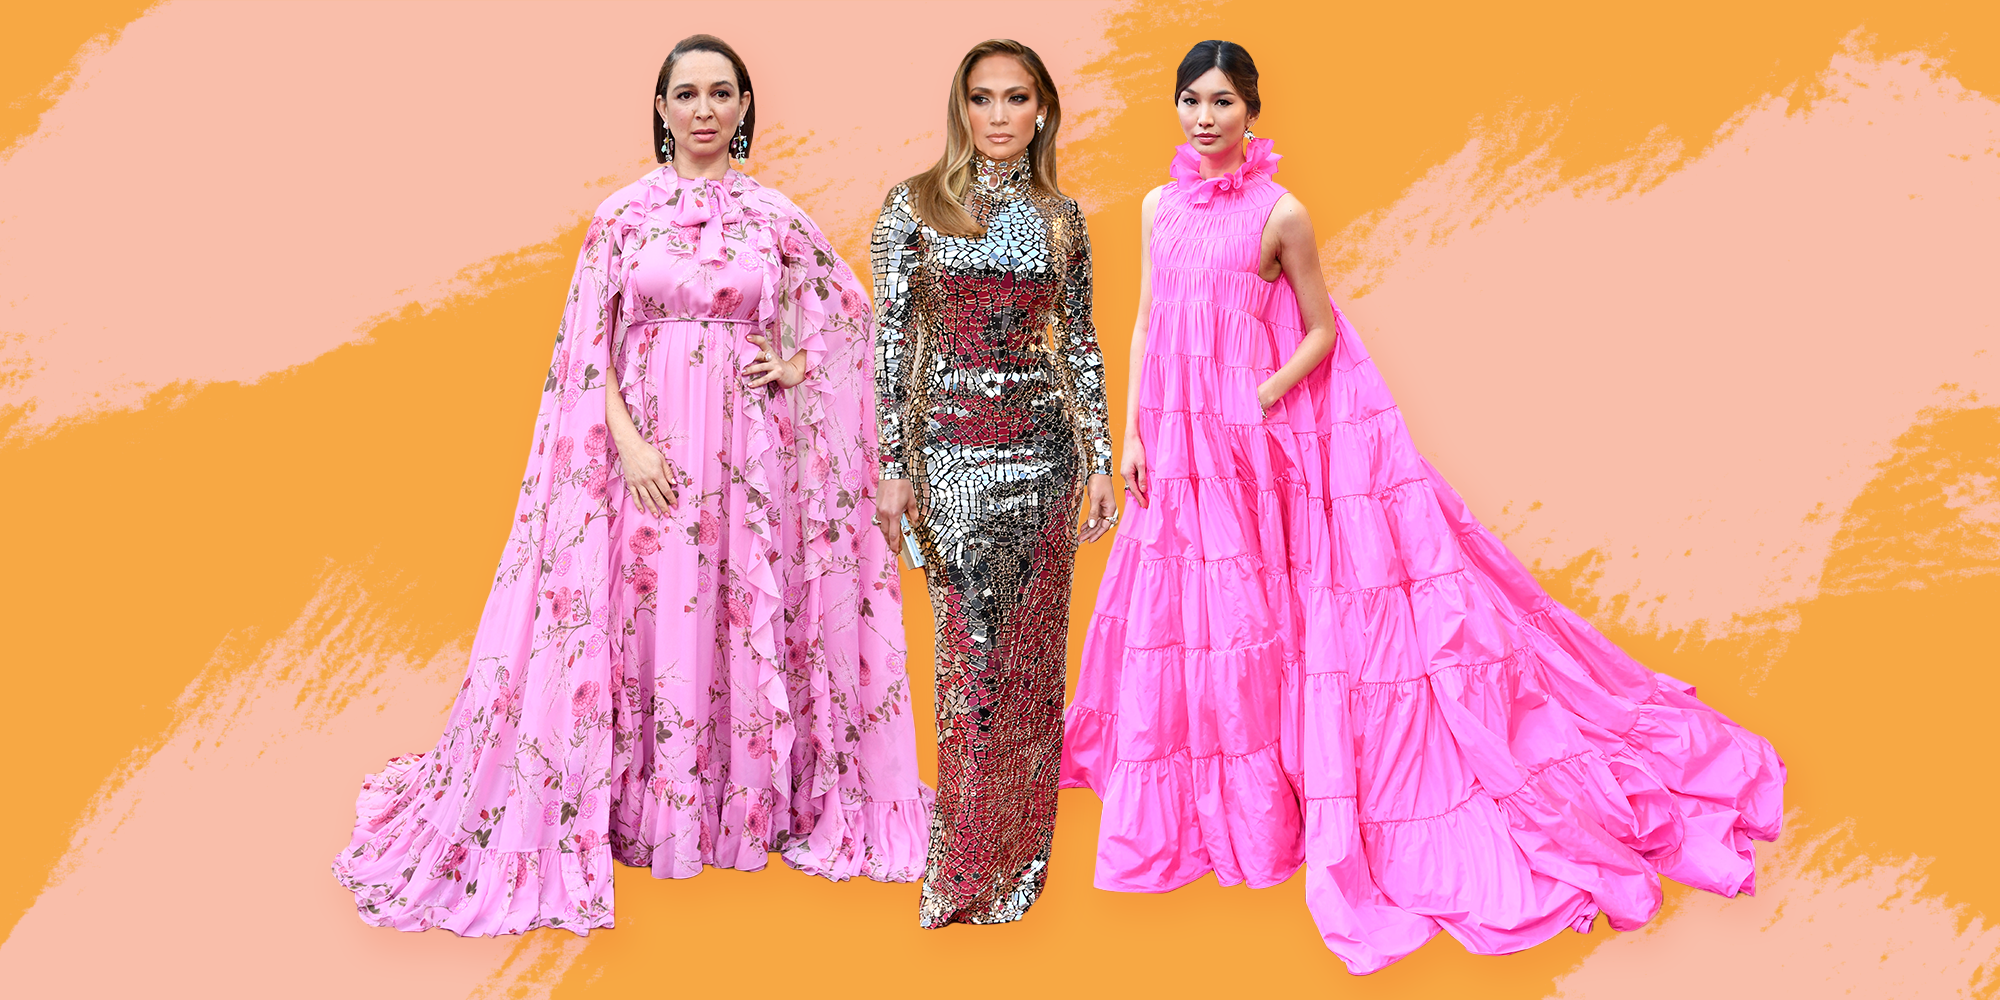 Were These Oscars Looks Inspired By Loofahs, Paper Lanterns, And Other Home Decor?